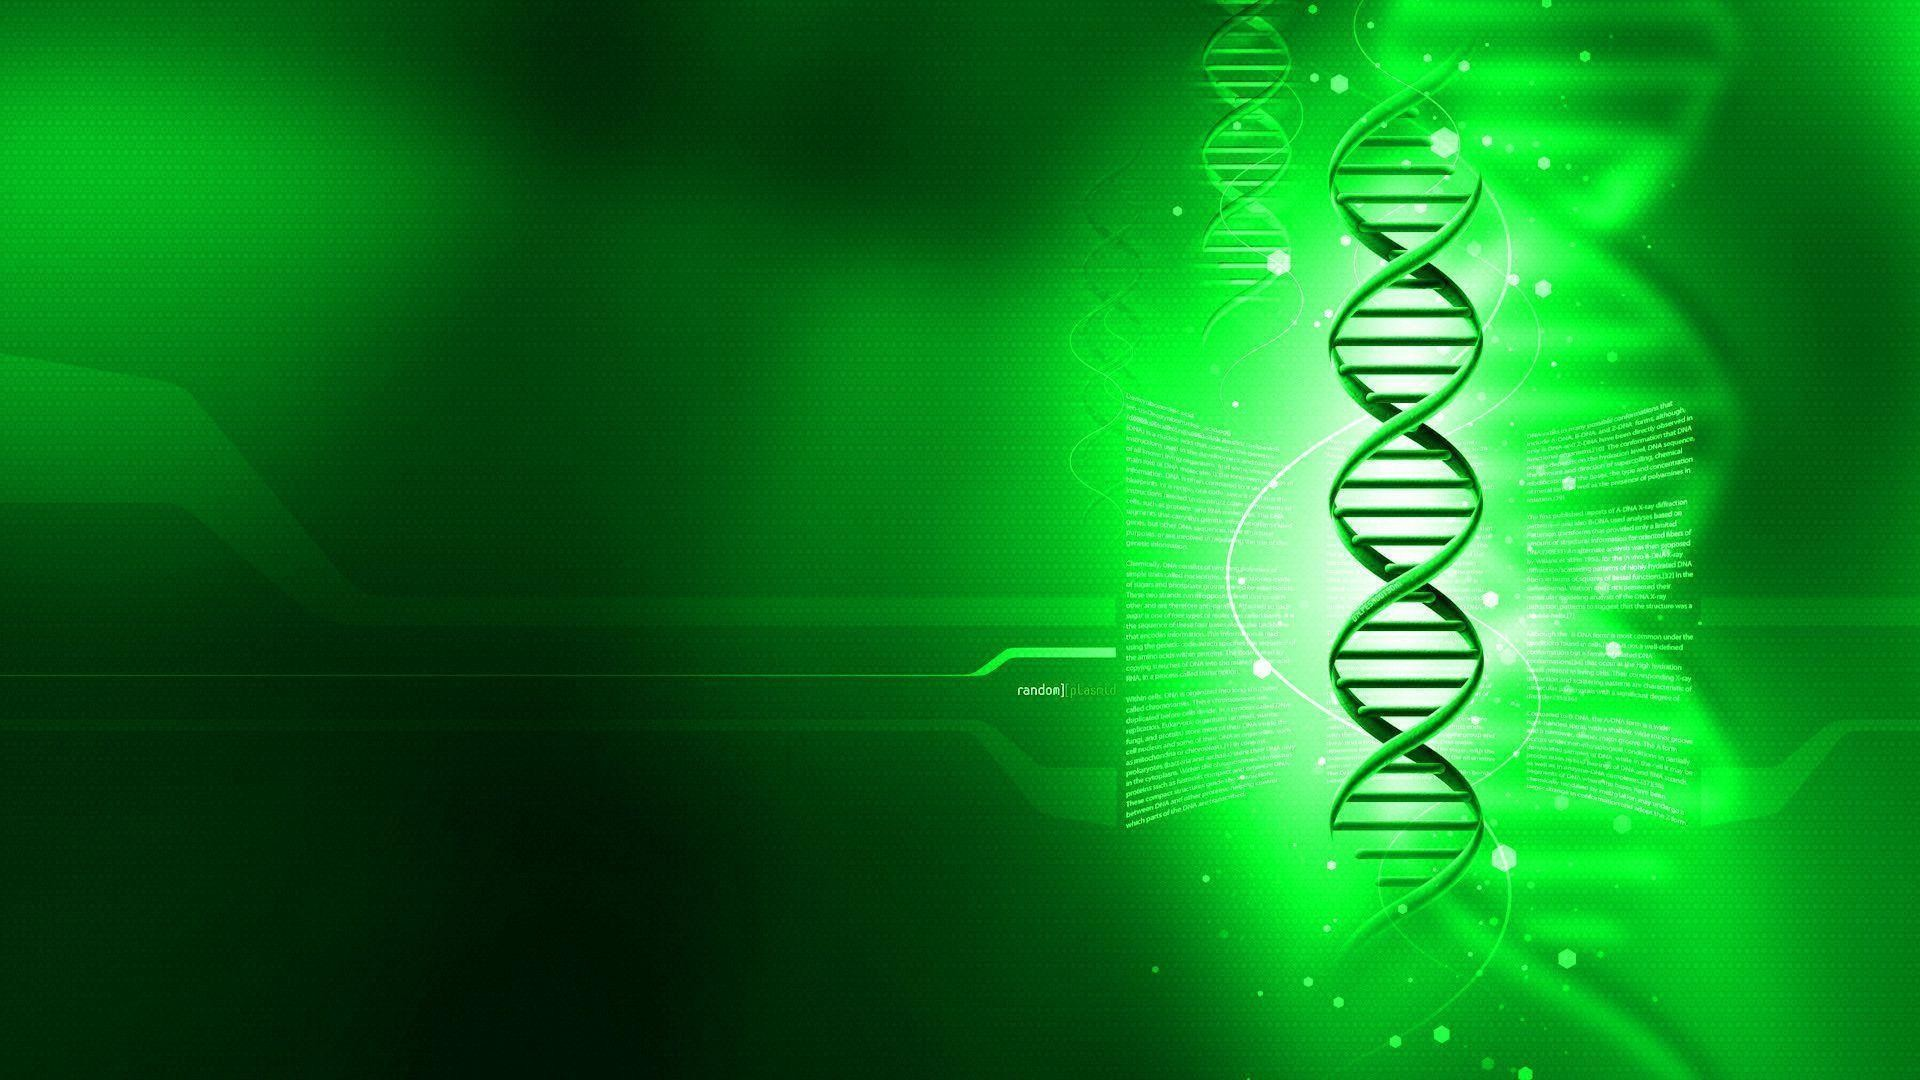 Wallpapers For > Biology Wallpaper Dna